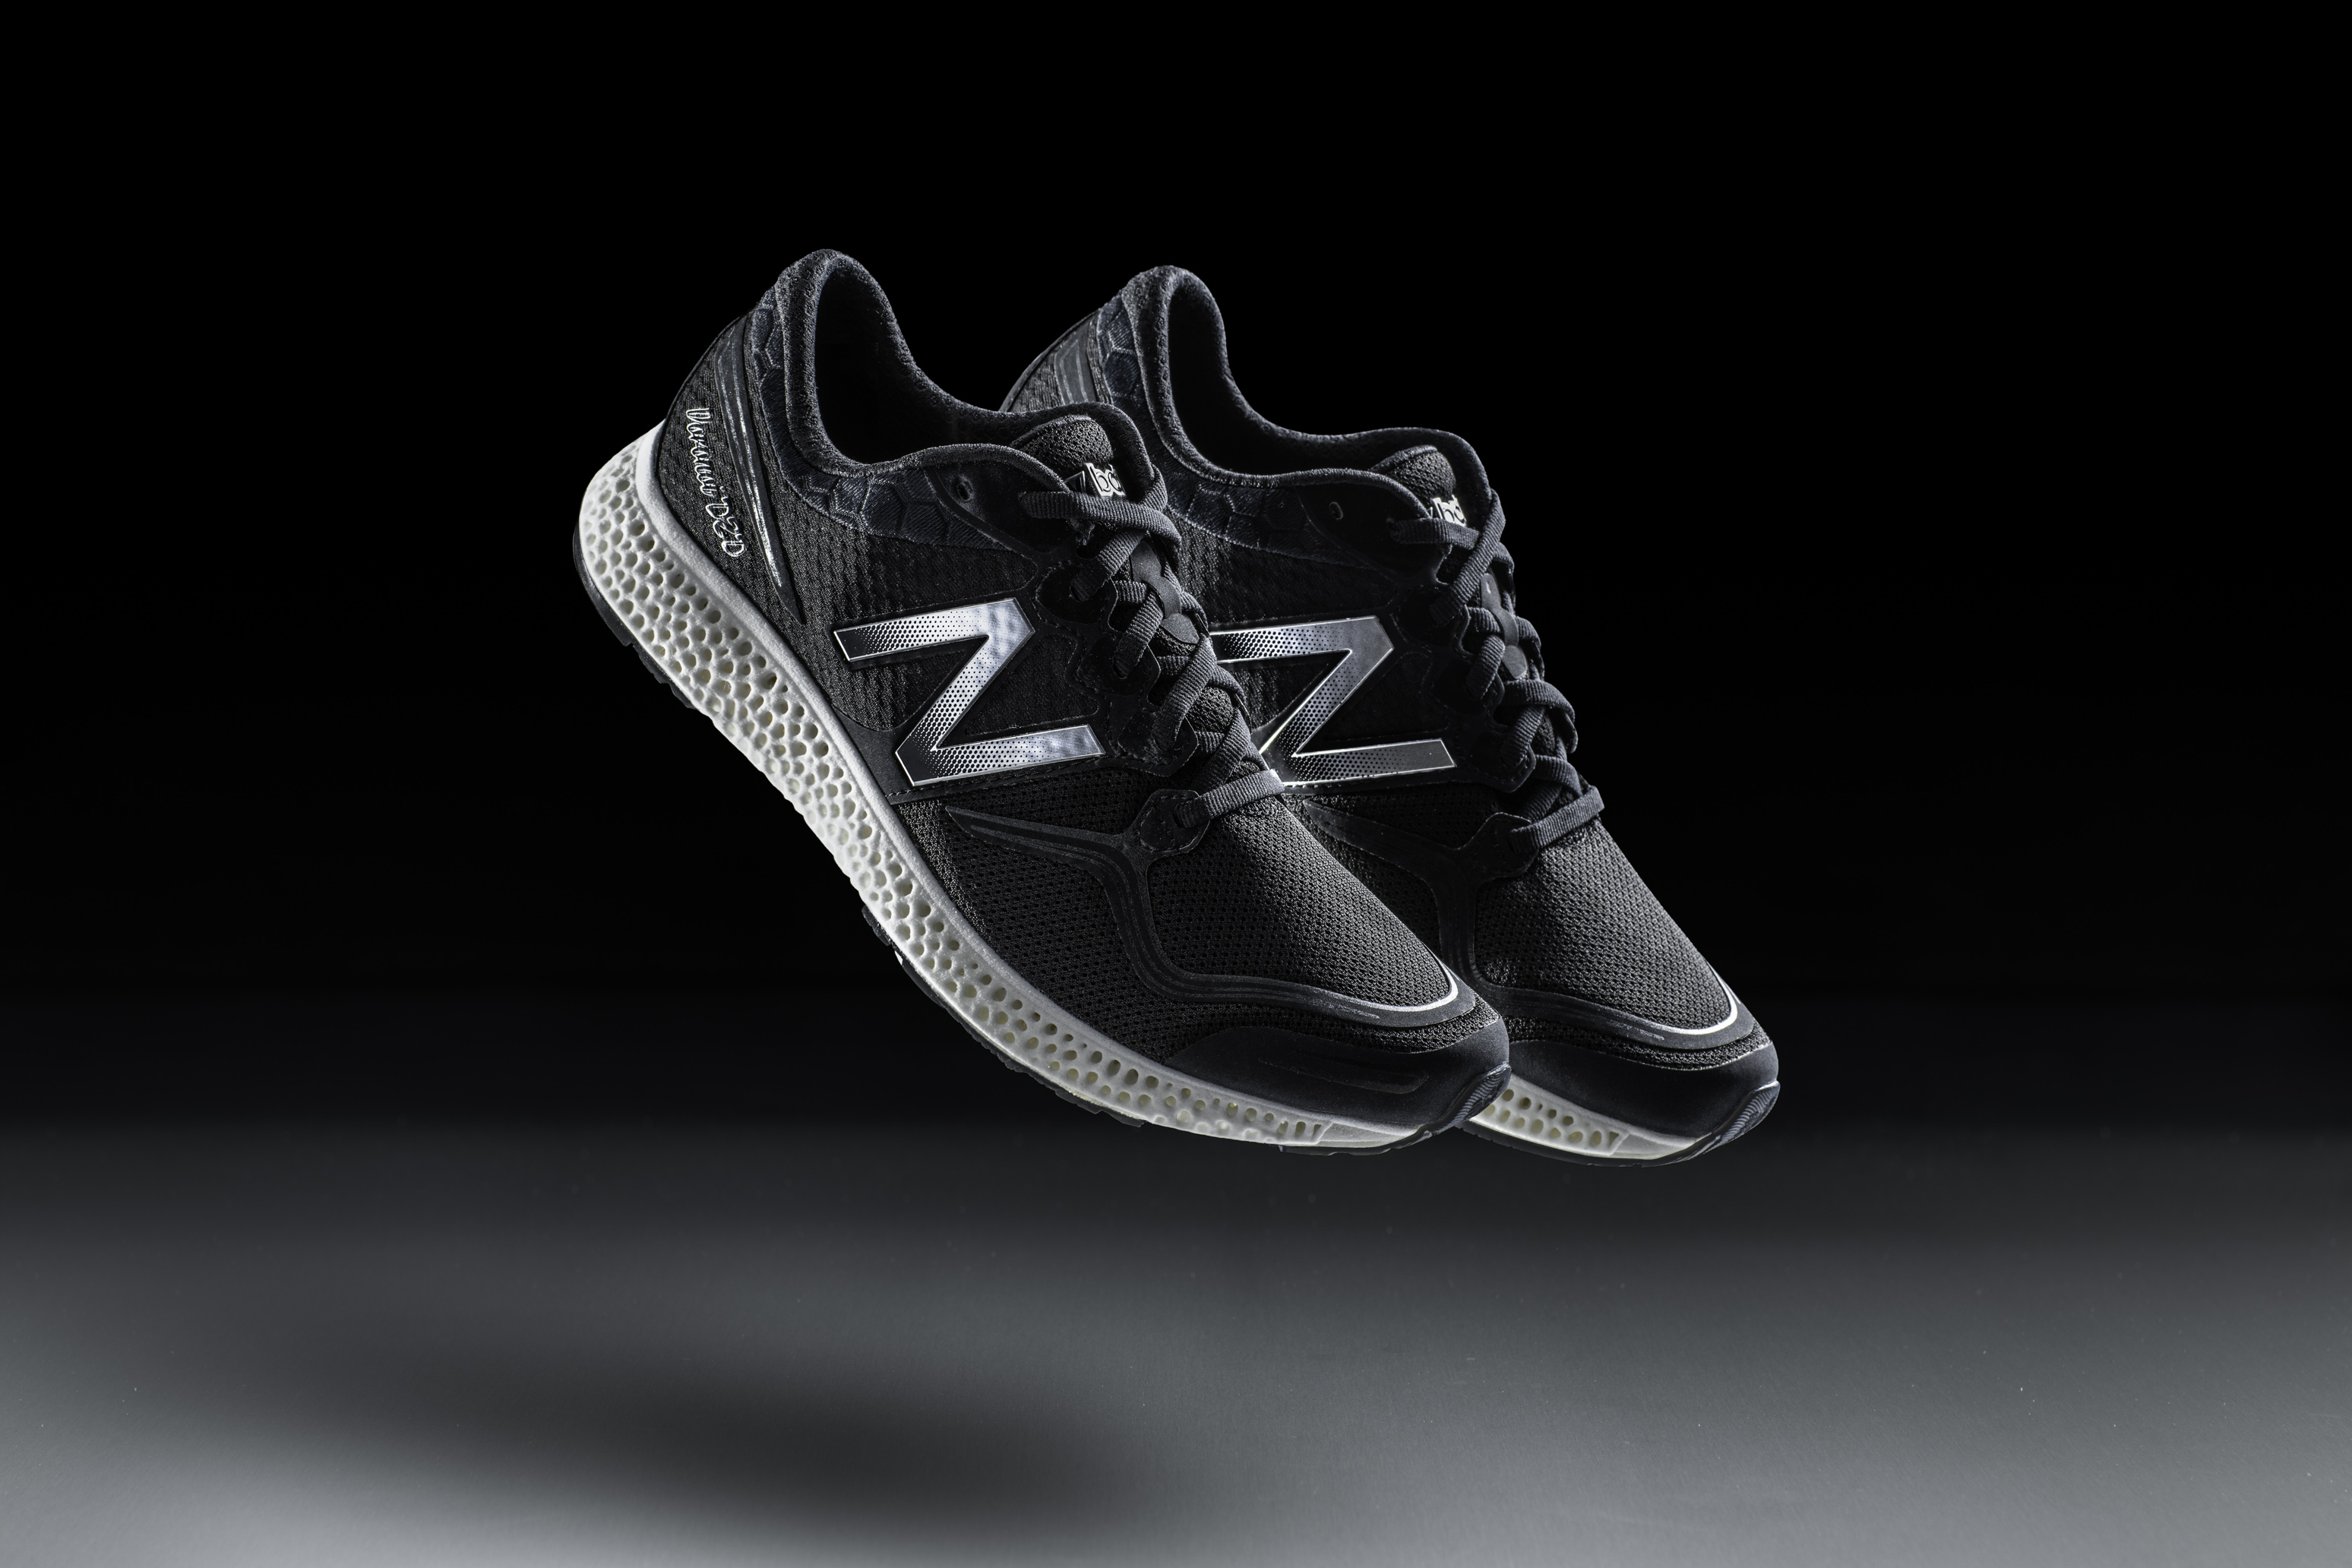 New Balance will show off its running shoe with the 3D-printed midsole at the 2016 Consumer Electronics Show.